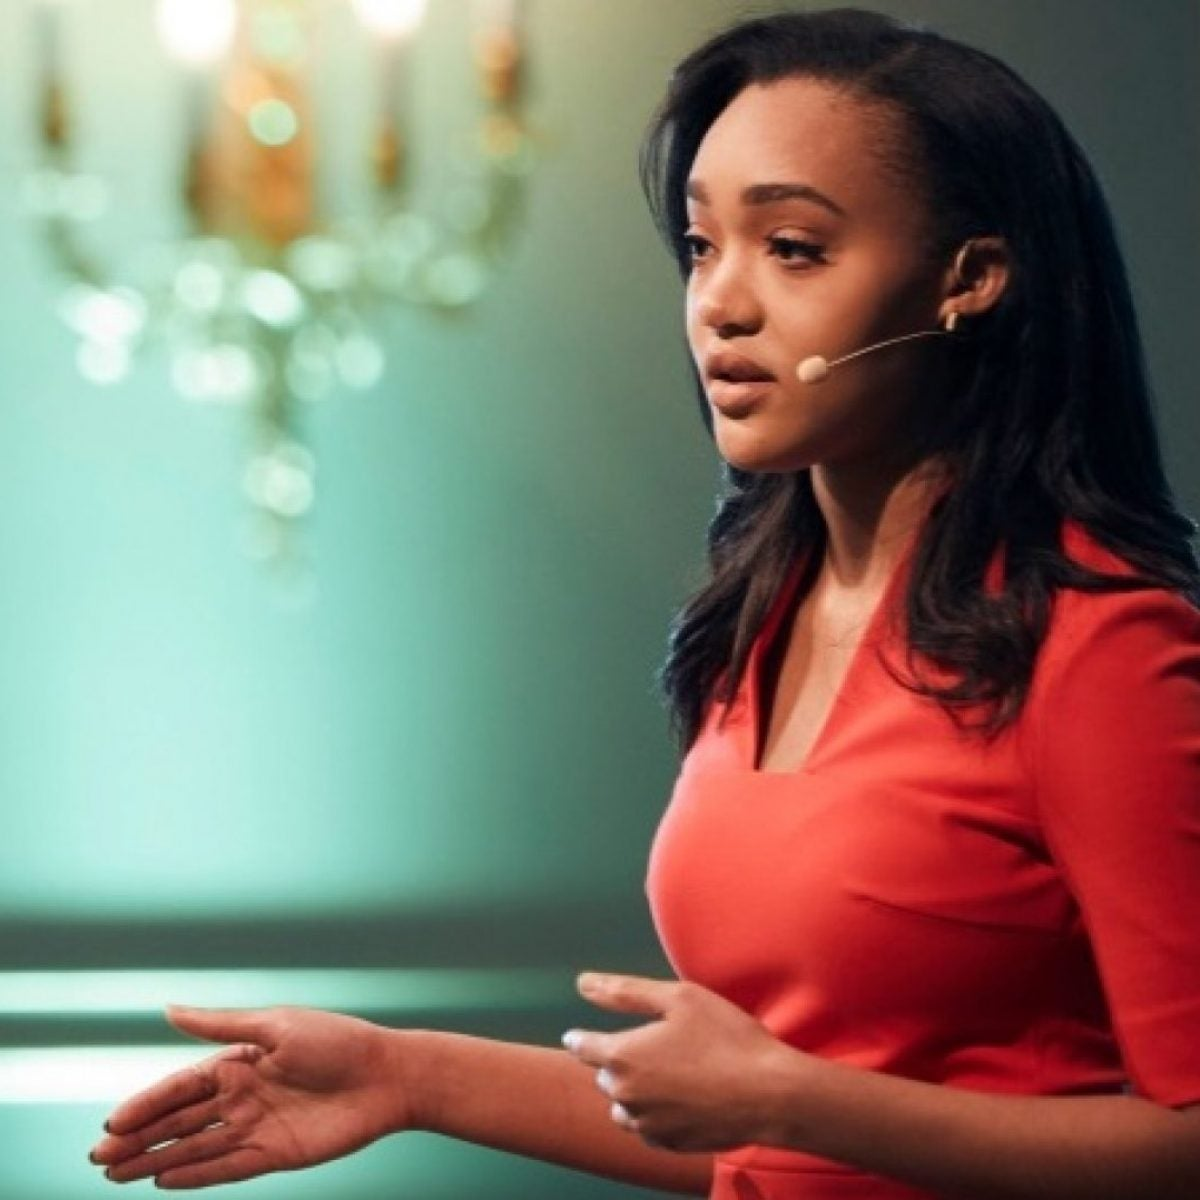 The Youngest Female Trader on Wall Street Reveals The Best Financial Advice She Ever Received